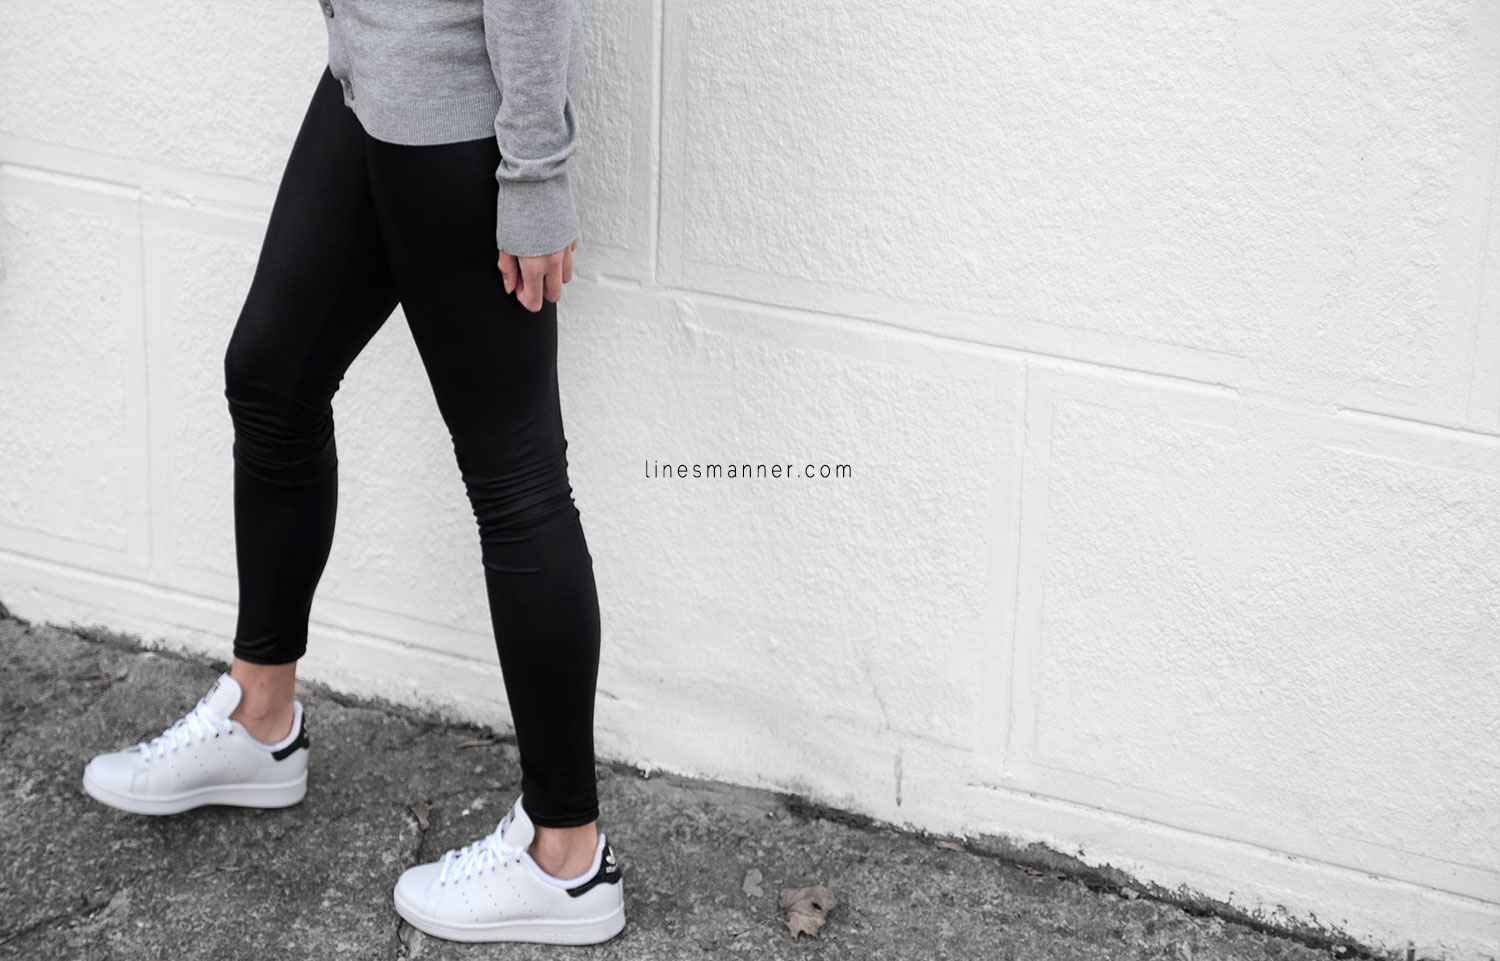 Lines-Manner-Timeless-Comfort-Essentials-Monochrome-Trend-Minimal-Textures-Fall-Details-Simplicity-Cardigan-Reveal-Sneakers-Stan_Smith-Adidas-Basics-Outfit-3